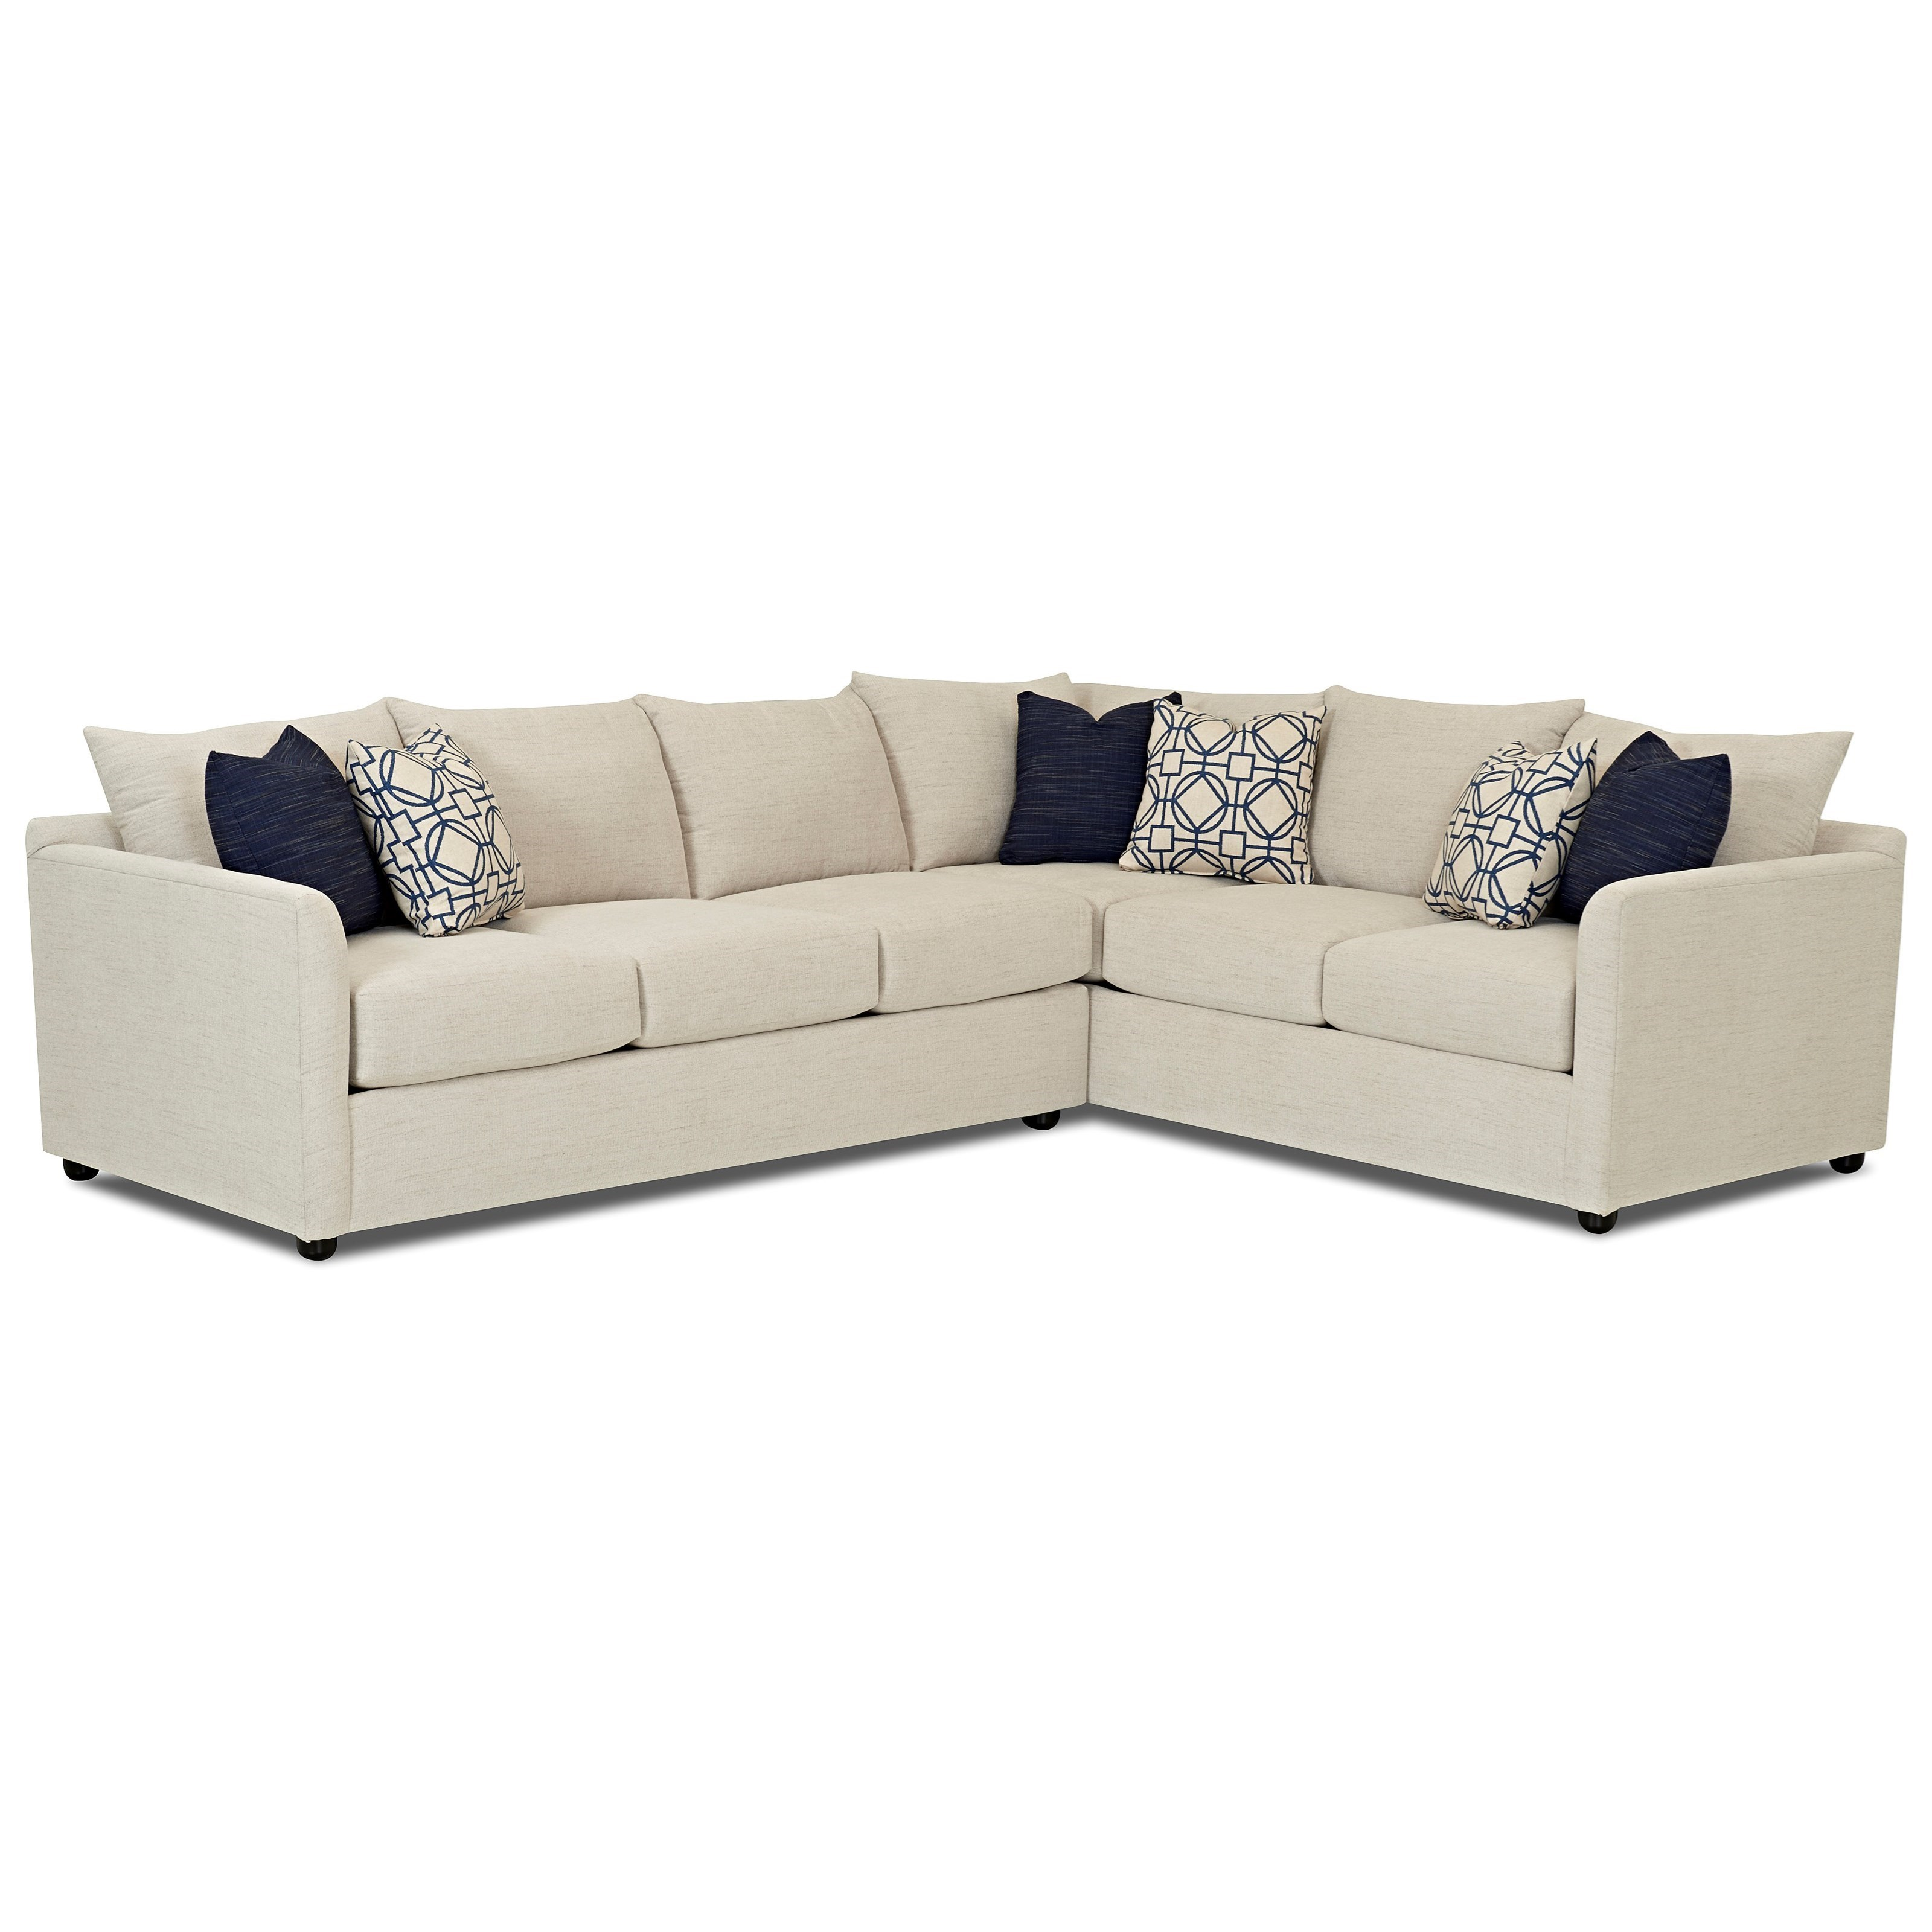 Trisha Yearwood Home AtlantaSectional Sofa ...